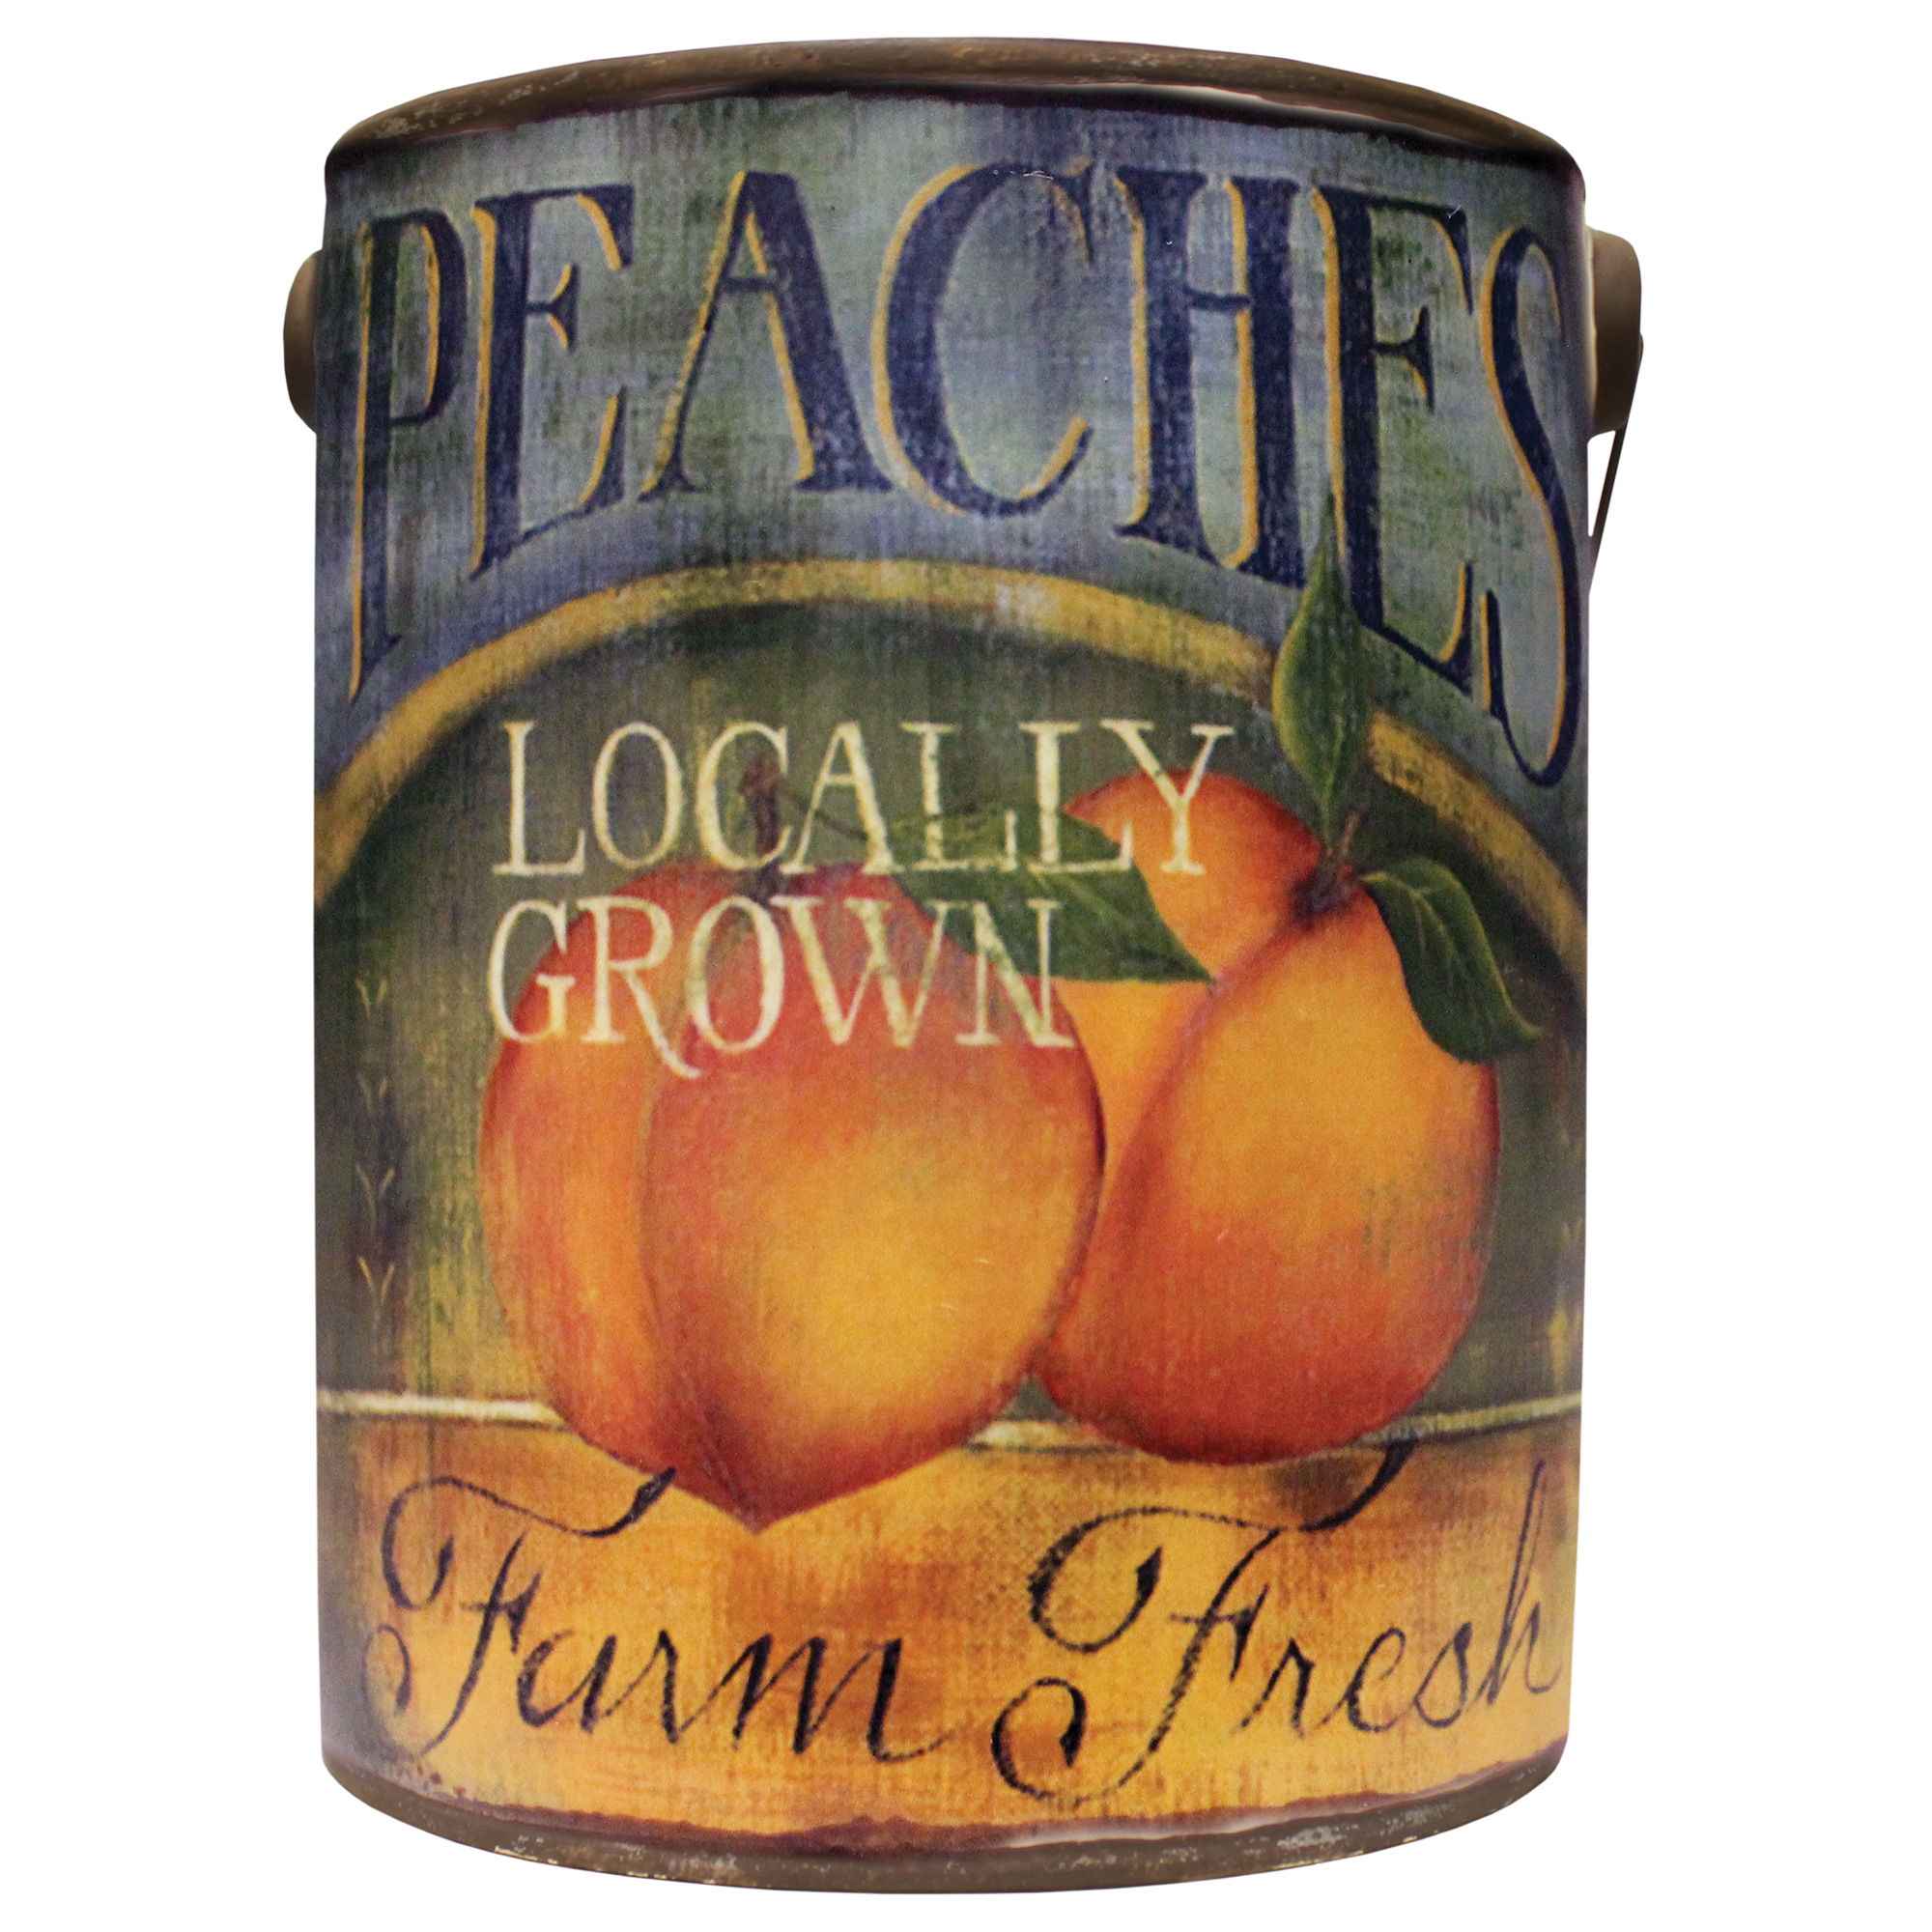 LARGE EMPTY FARM FRESH BUCKET- JUICY PEACH